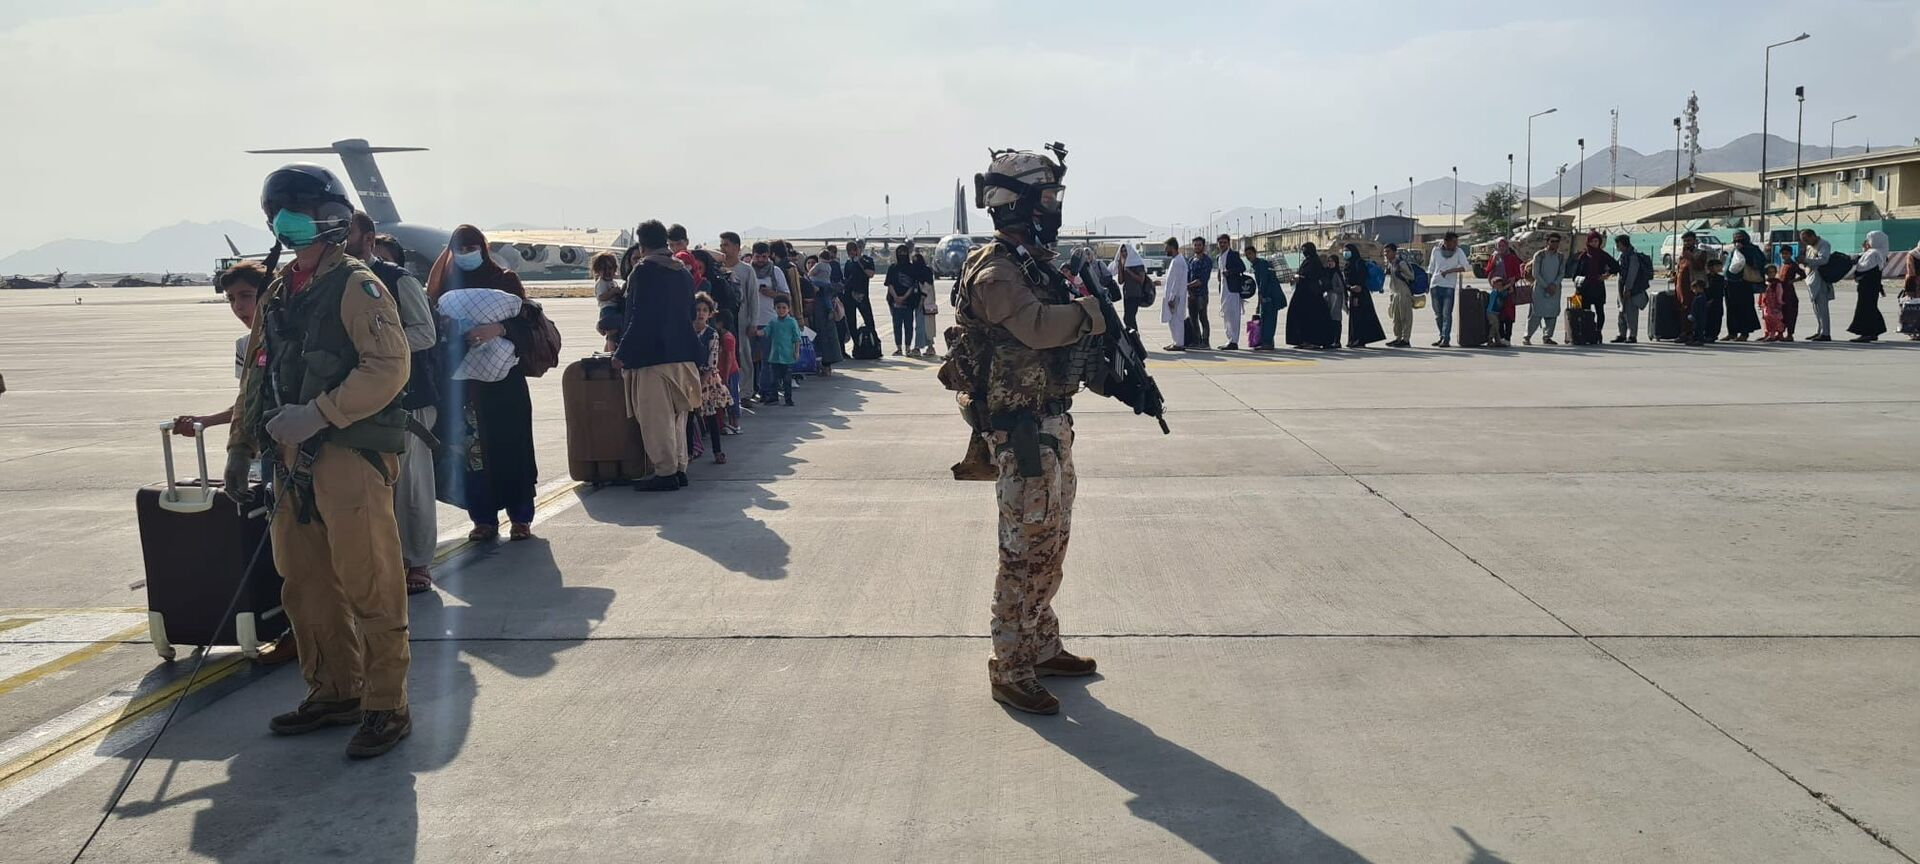 Afghan evacuees queue before boarding Italy's military aircraft C130J during evacuation at Kabul's airport, Afghanistan, August 22, 2021 - Sputnik International, 1920, 07.09.2021